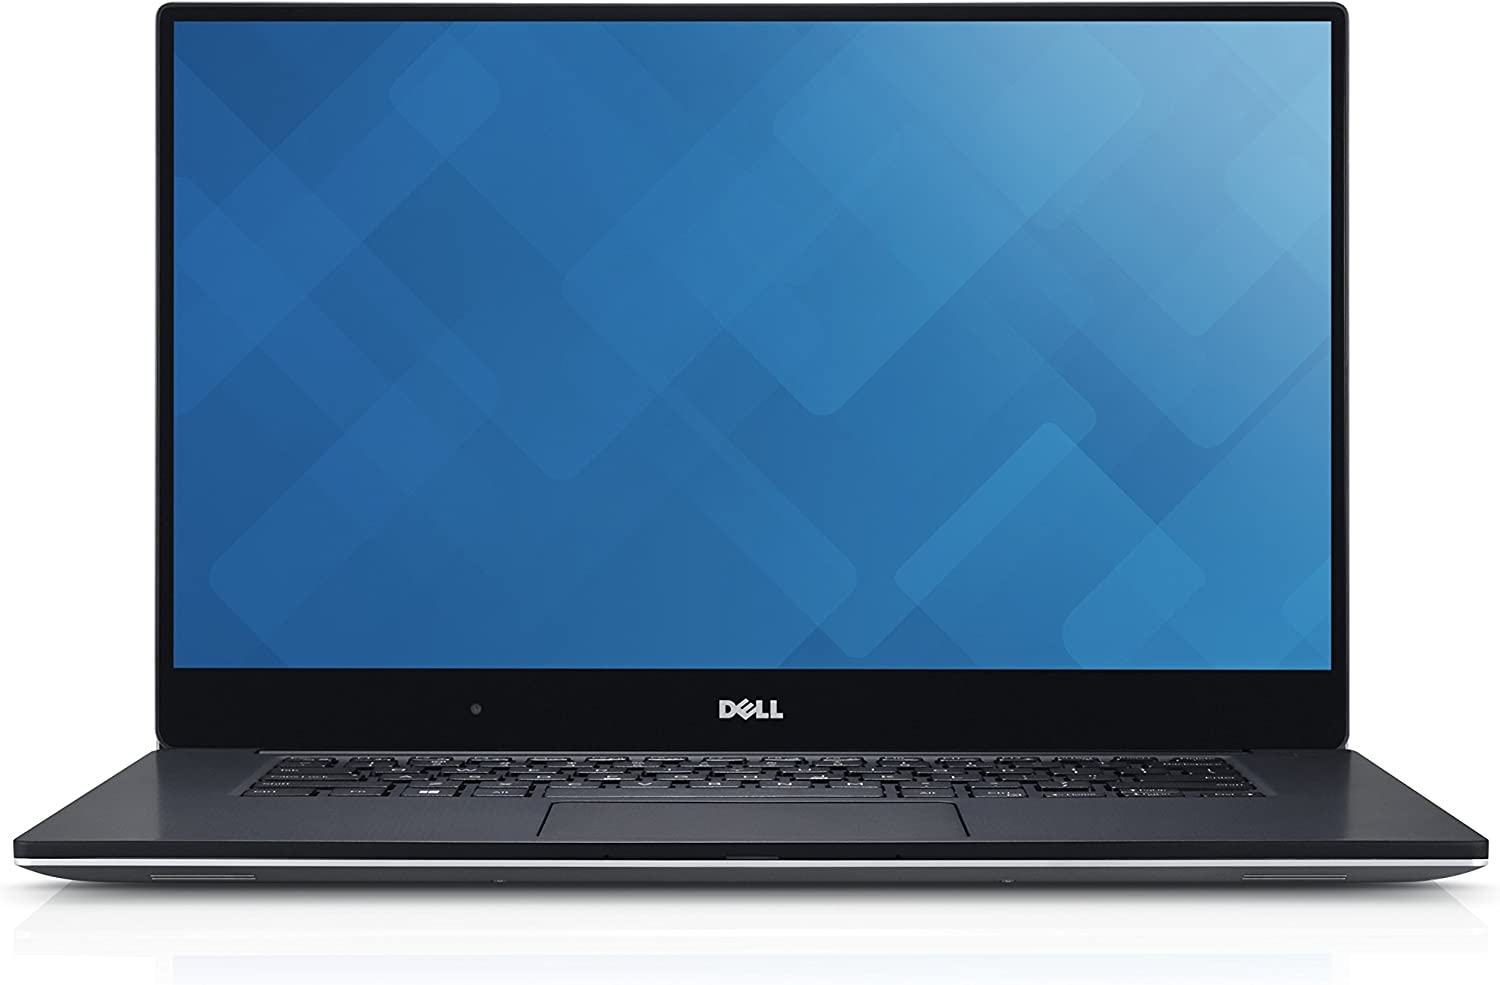 Dell XPS 15 9550 Laptop 15.6in 4K UHD (3840 x 2160) Touch, Intel i7-6700HQ 3.5GHz Quad Core 32GB RAM 1TB SSD NVIDIA GeForce GTX 960M w/ 2GB GDDR5 Windows 10 (Renewed)